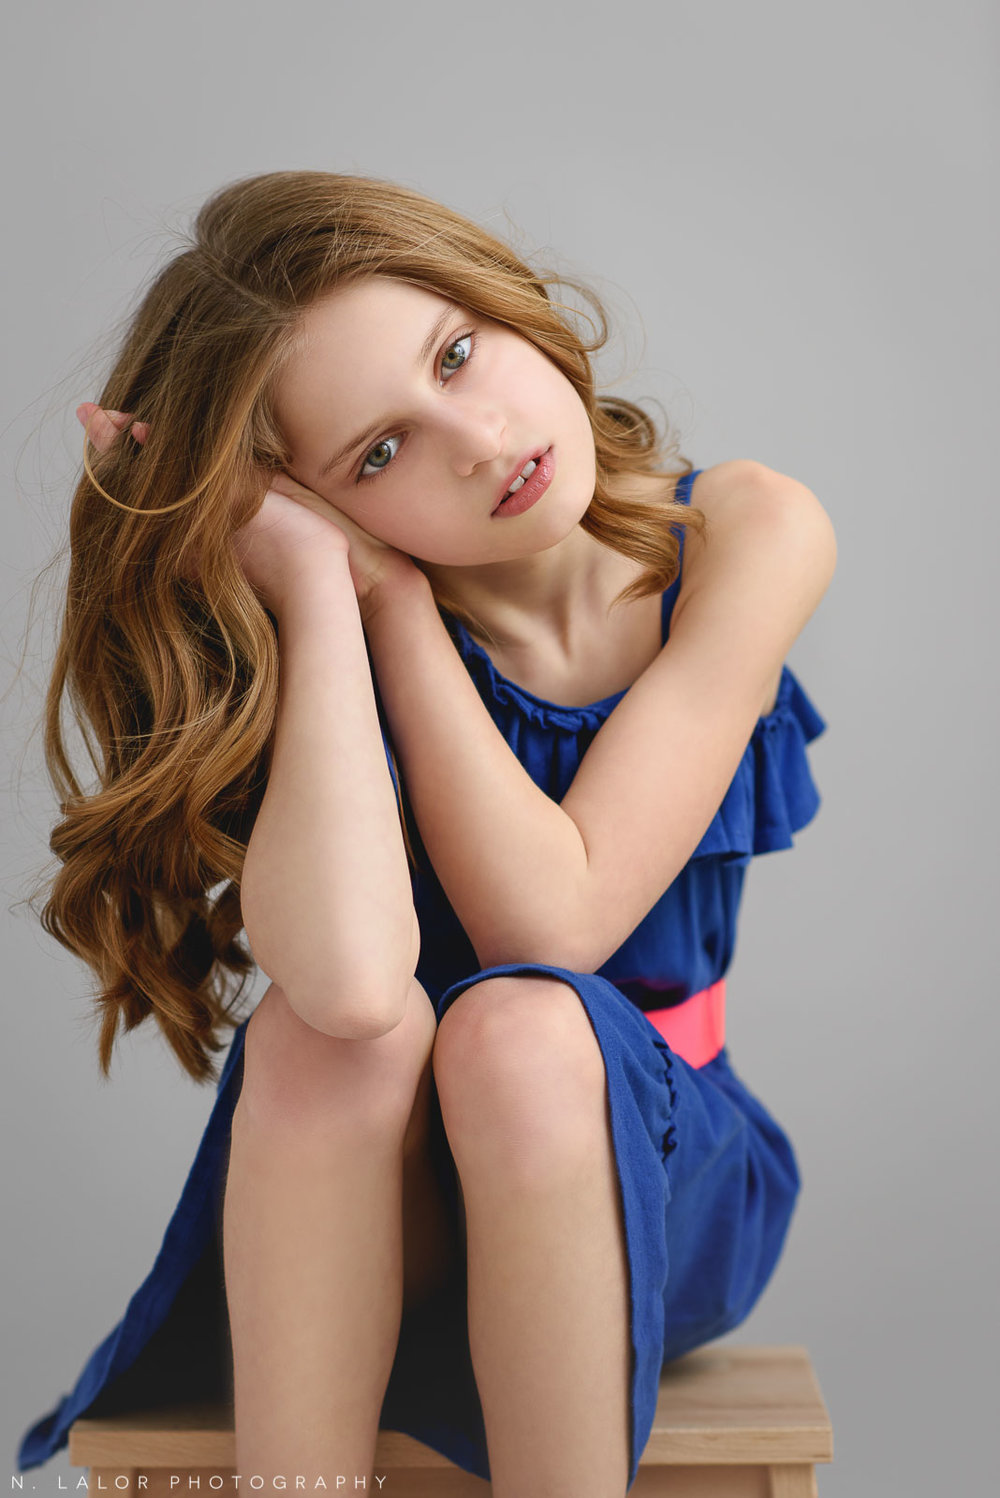 Sitting pose. Tween Studio photoshoot by N. Lalor Photography, located in Greenwich, CT.